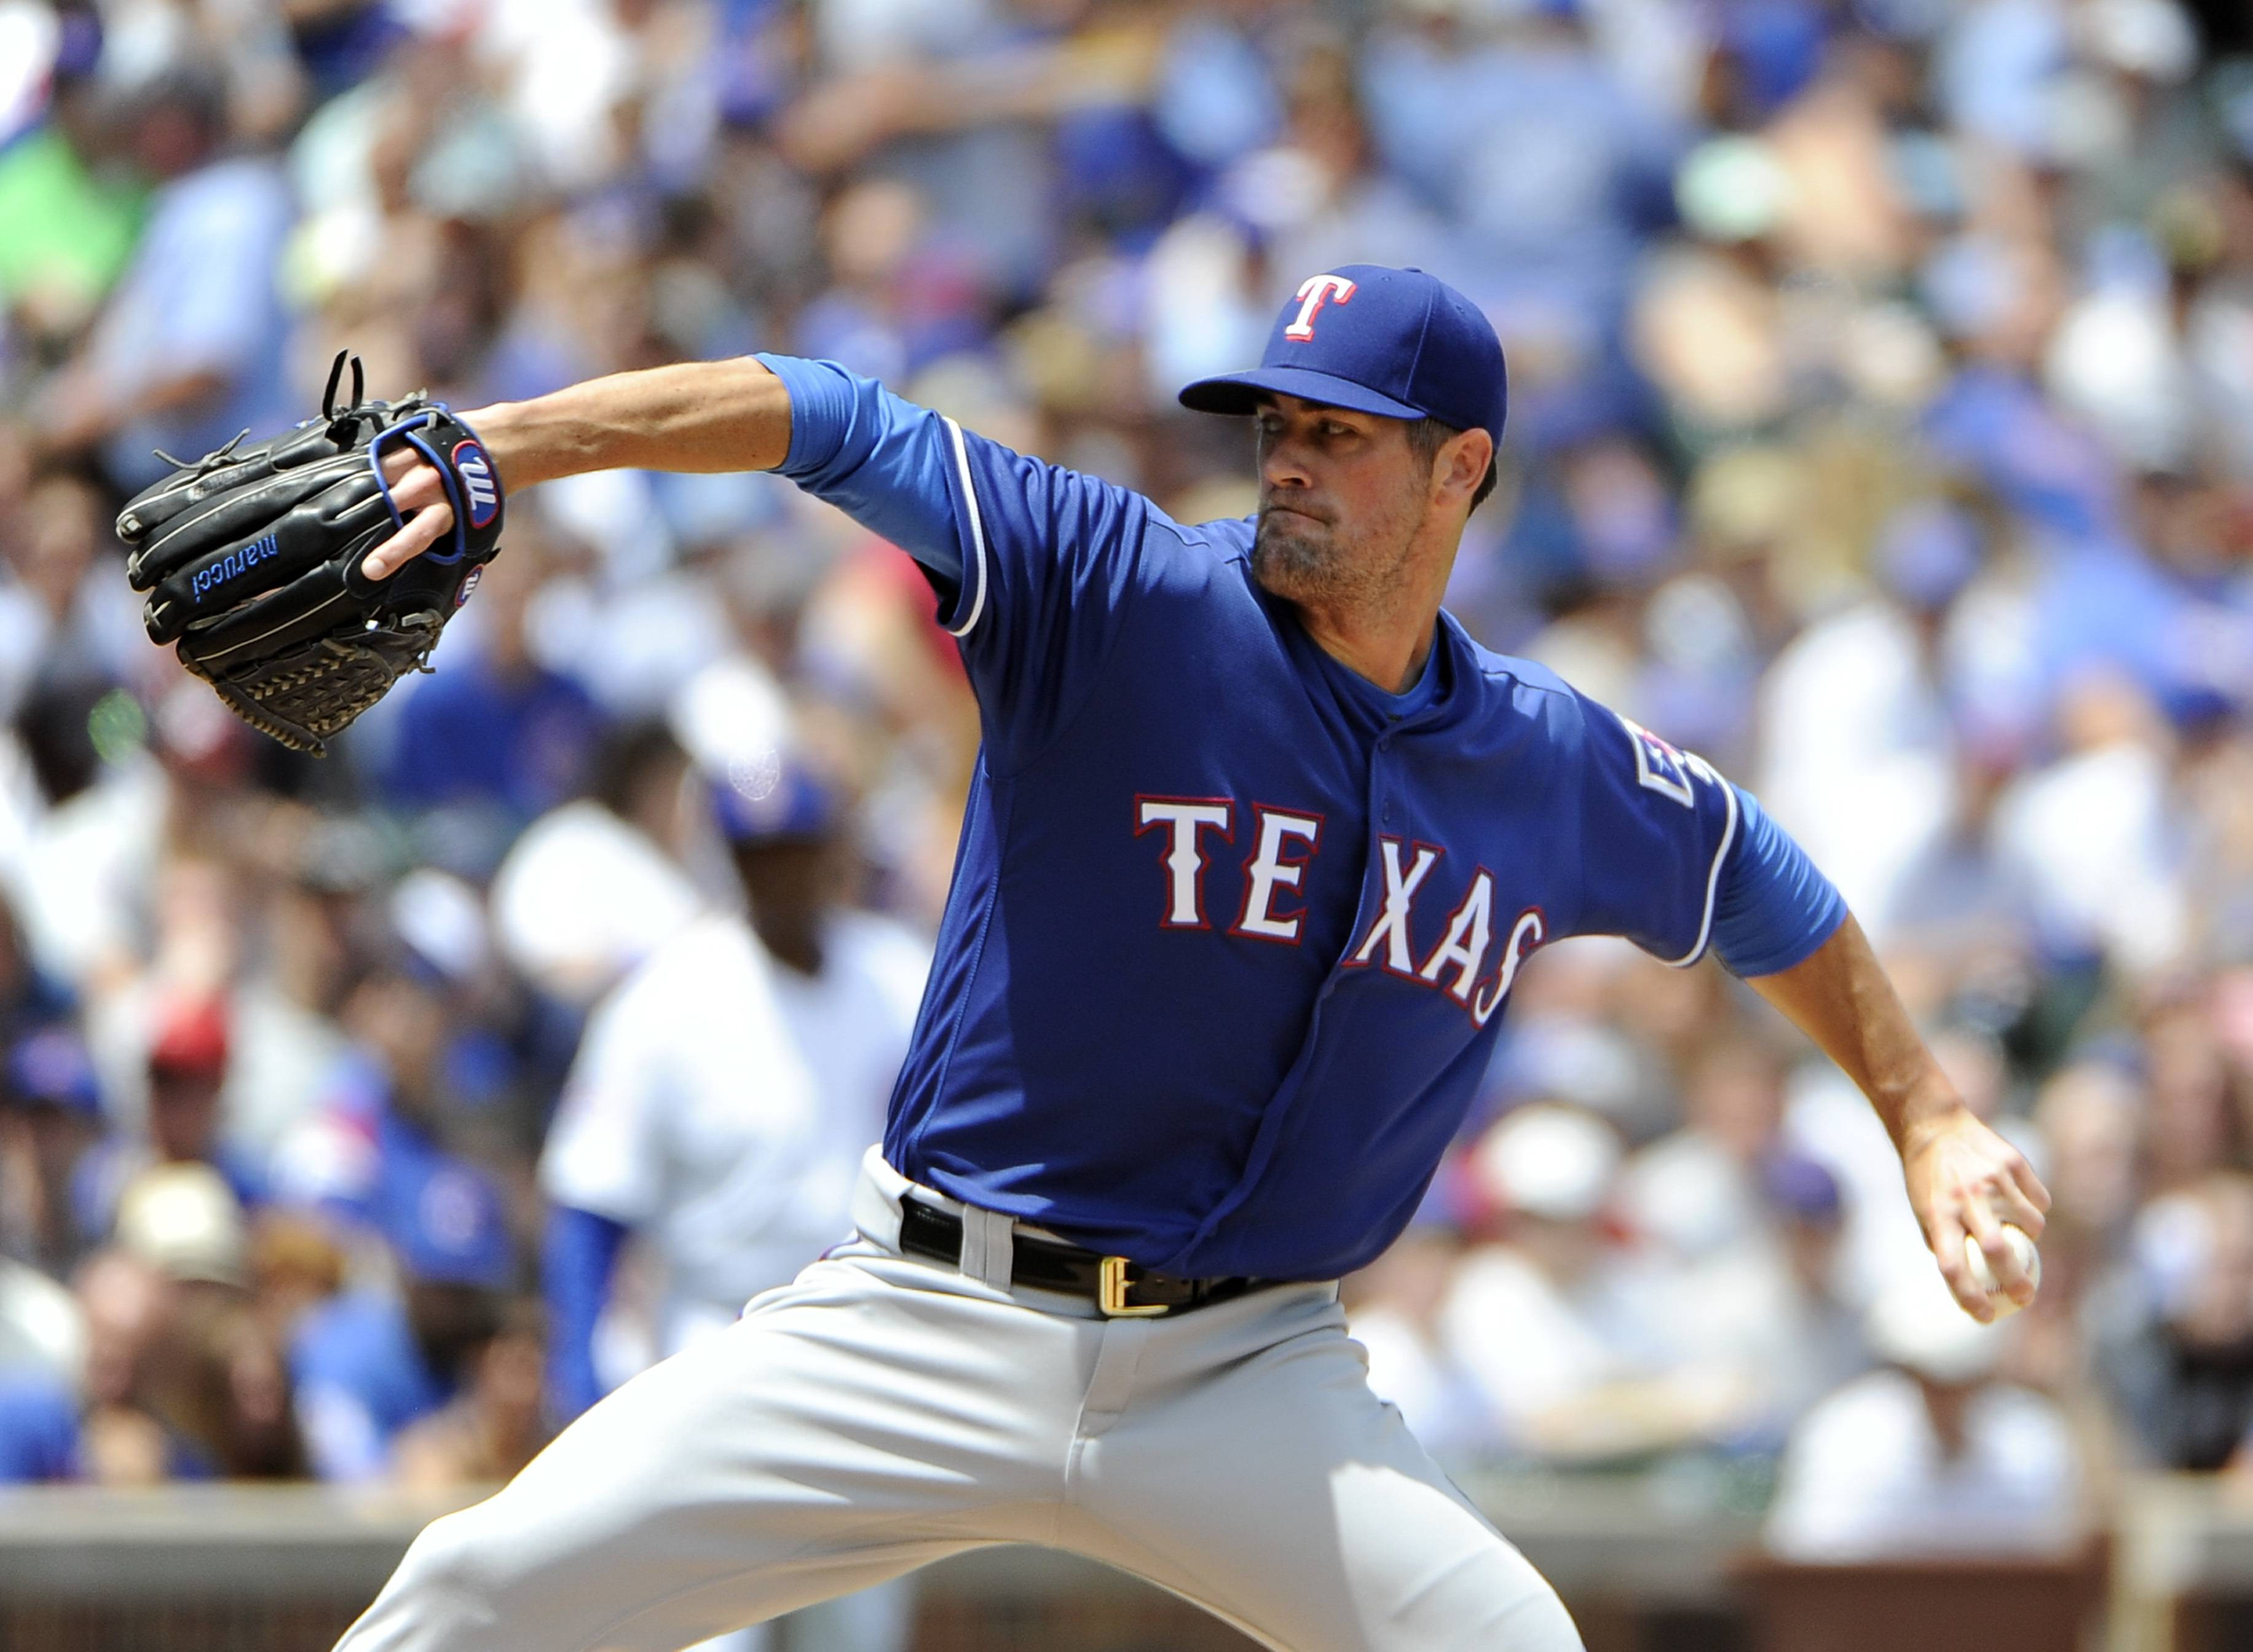 Texas Rangers starting pitcher Cole Hamels (35) throws against the Chicago Cubs during the first inning of an interleague baseball game, Sunday, July 17, 2016, in Chicago.